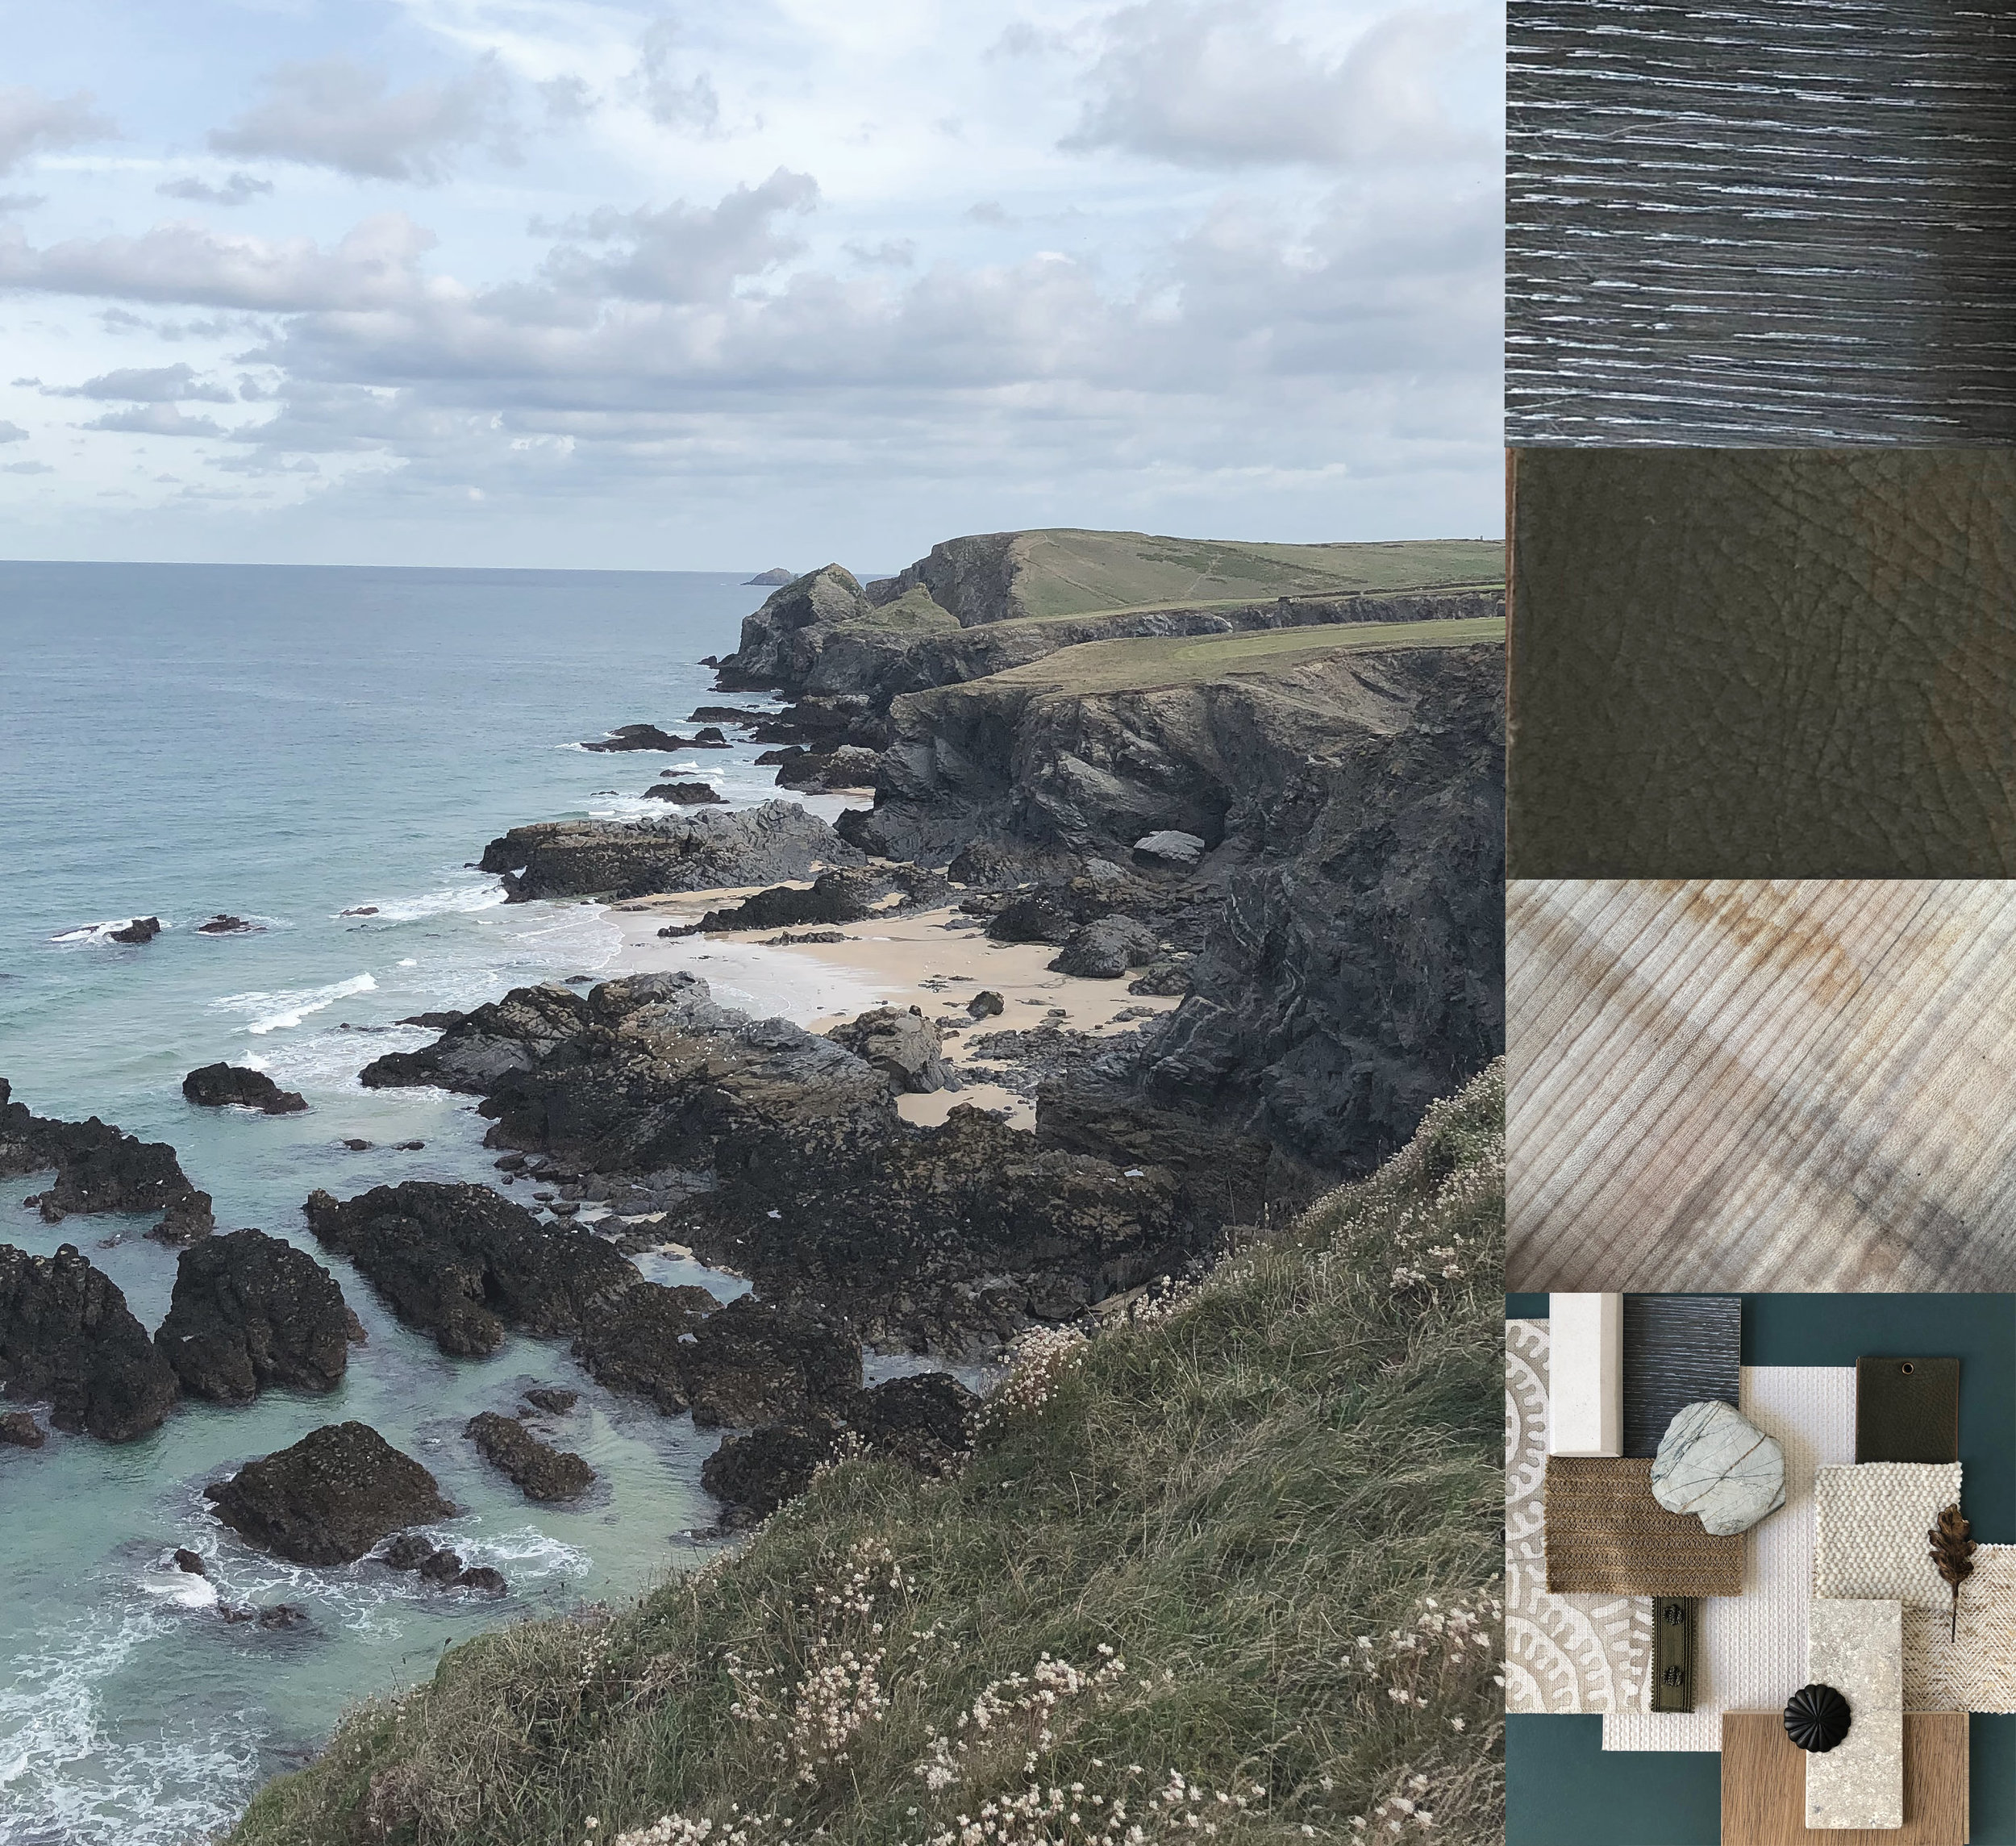 howark-design-interior-design-cornwall.jpg